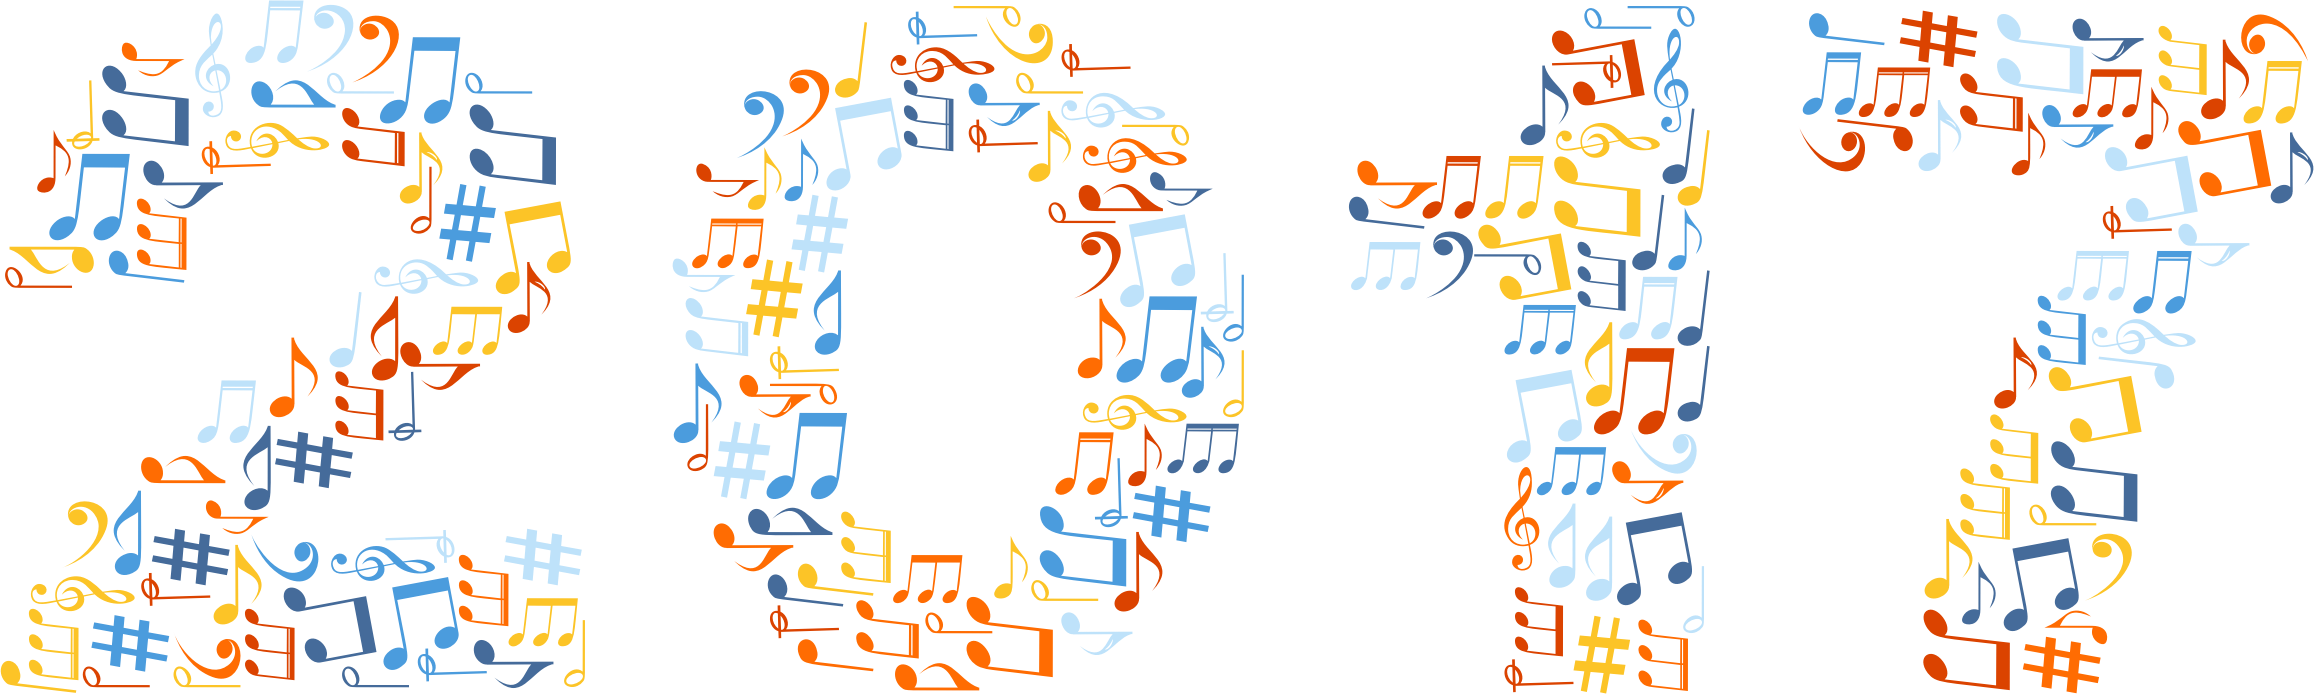 Colorful music notes background png. Download clipart no x